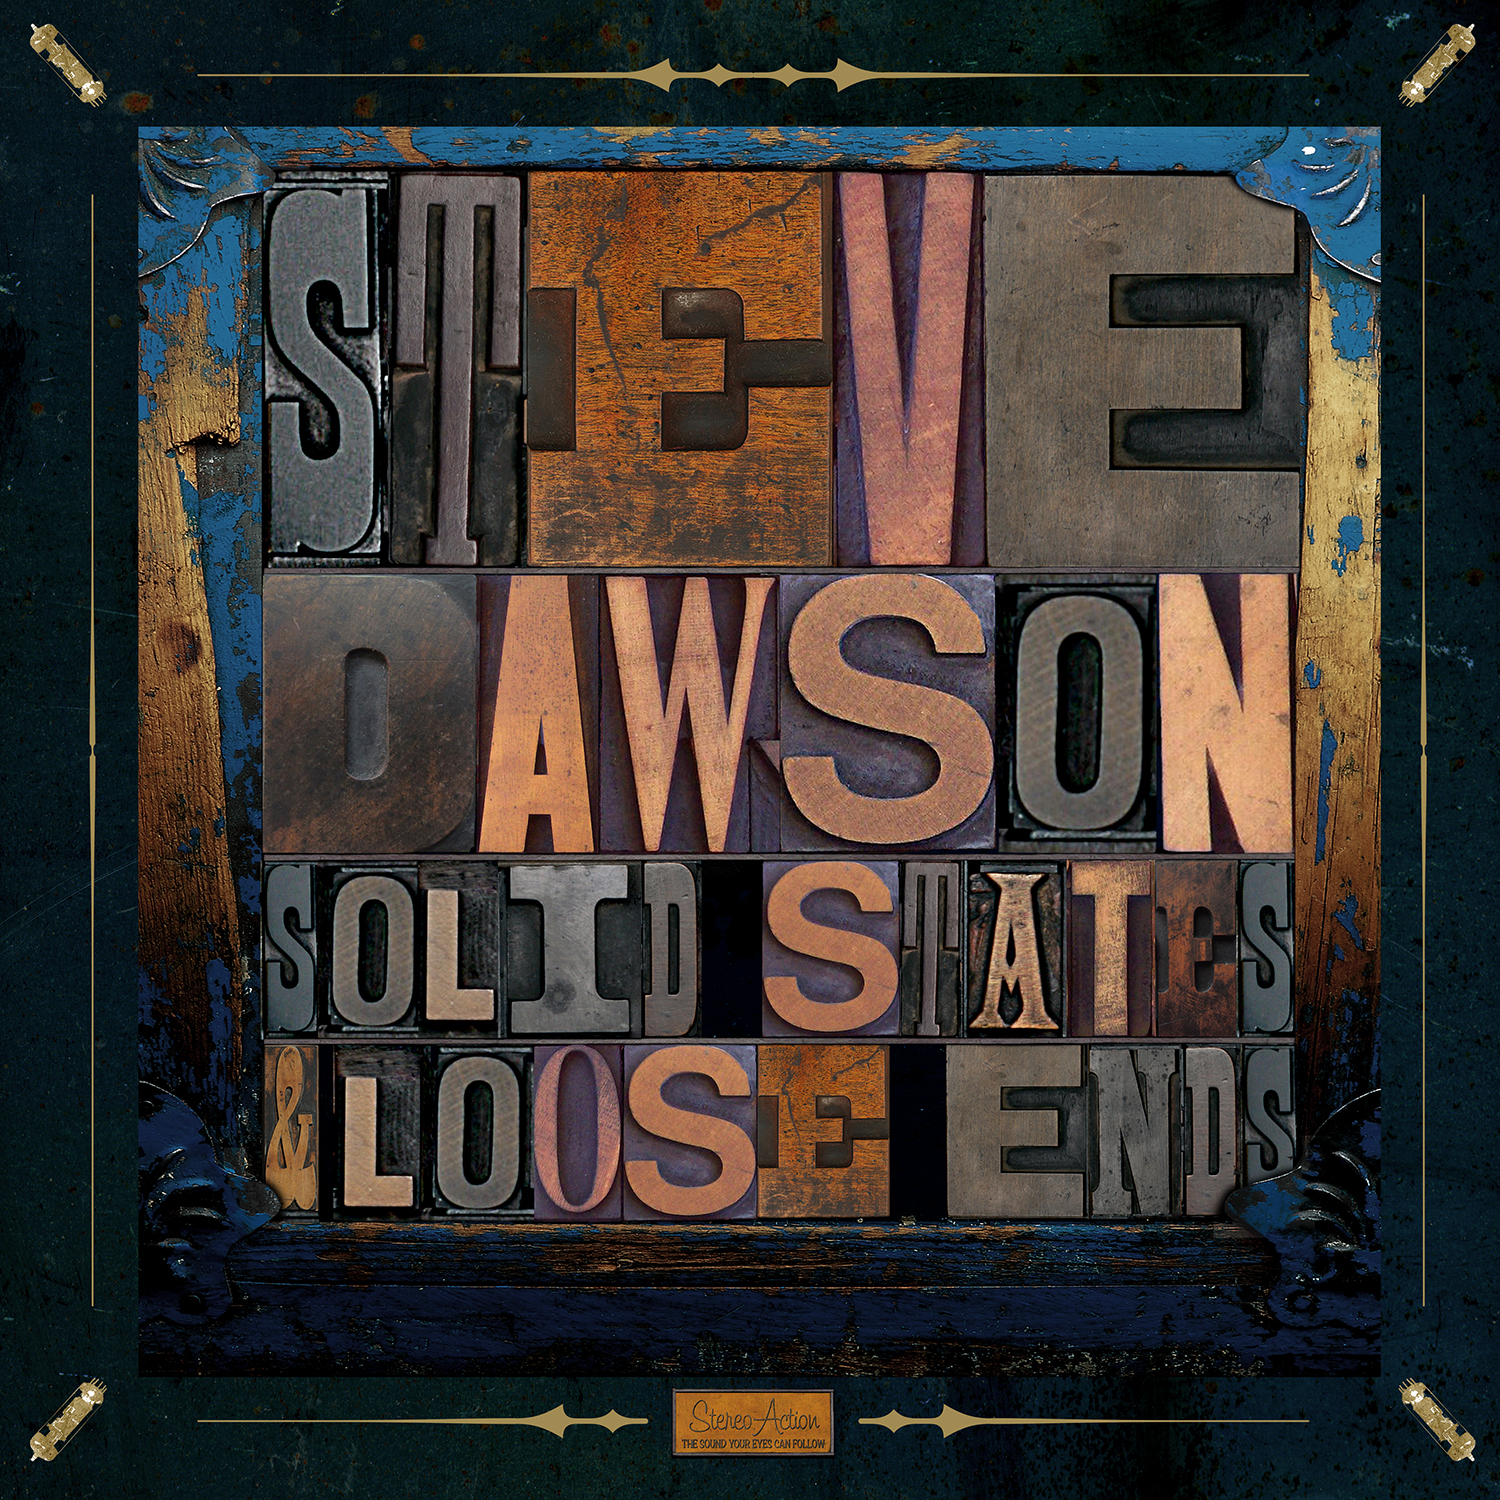 Solid States and Loose Ends (2016)